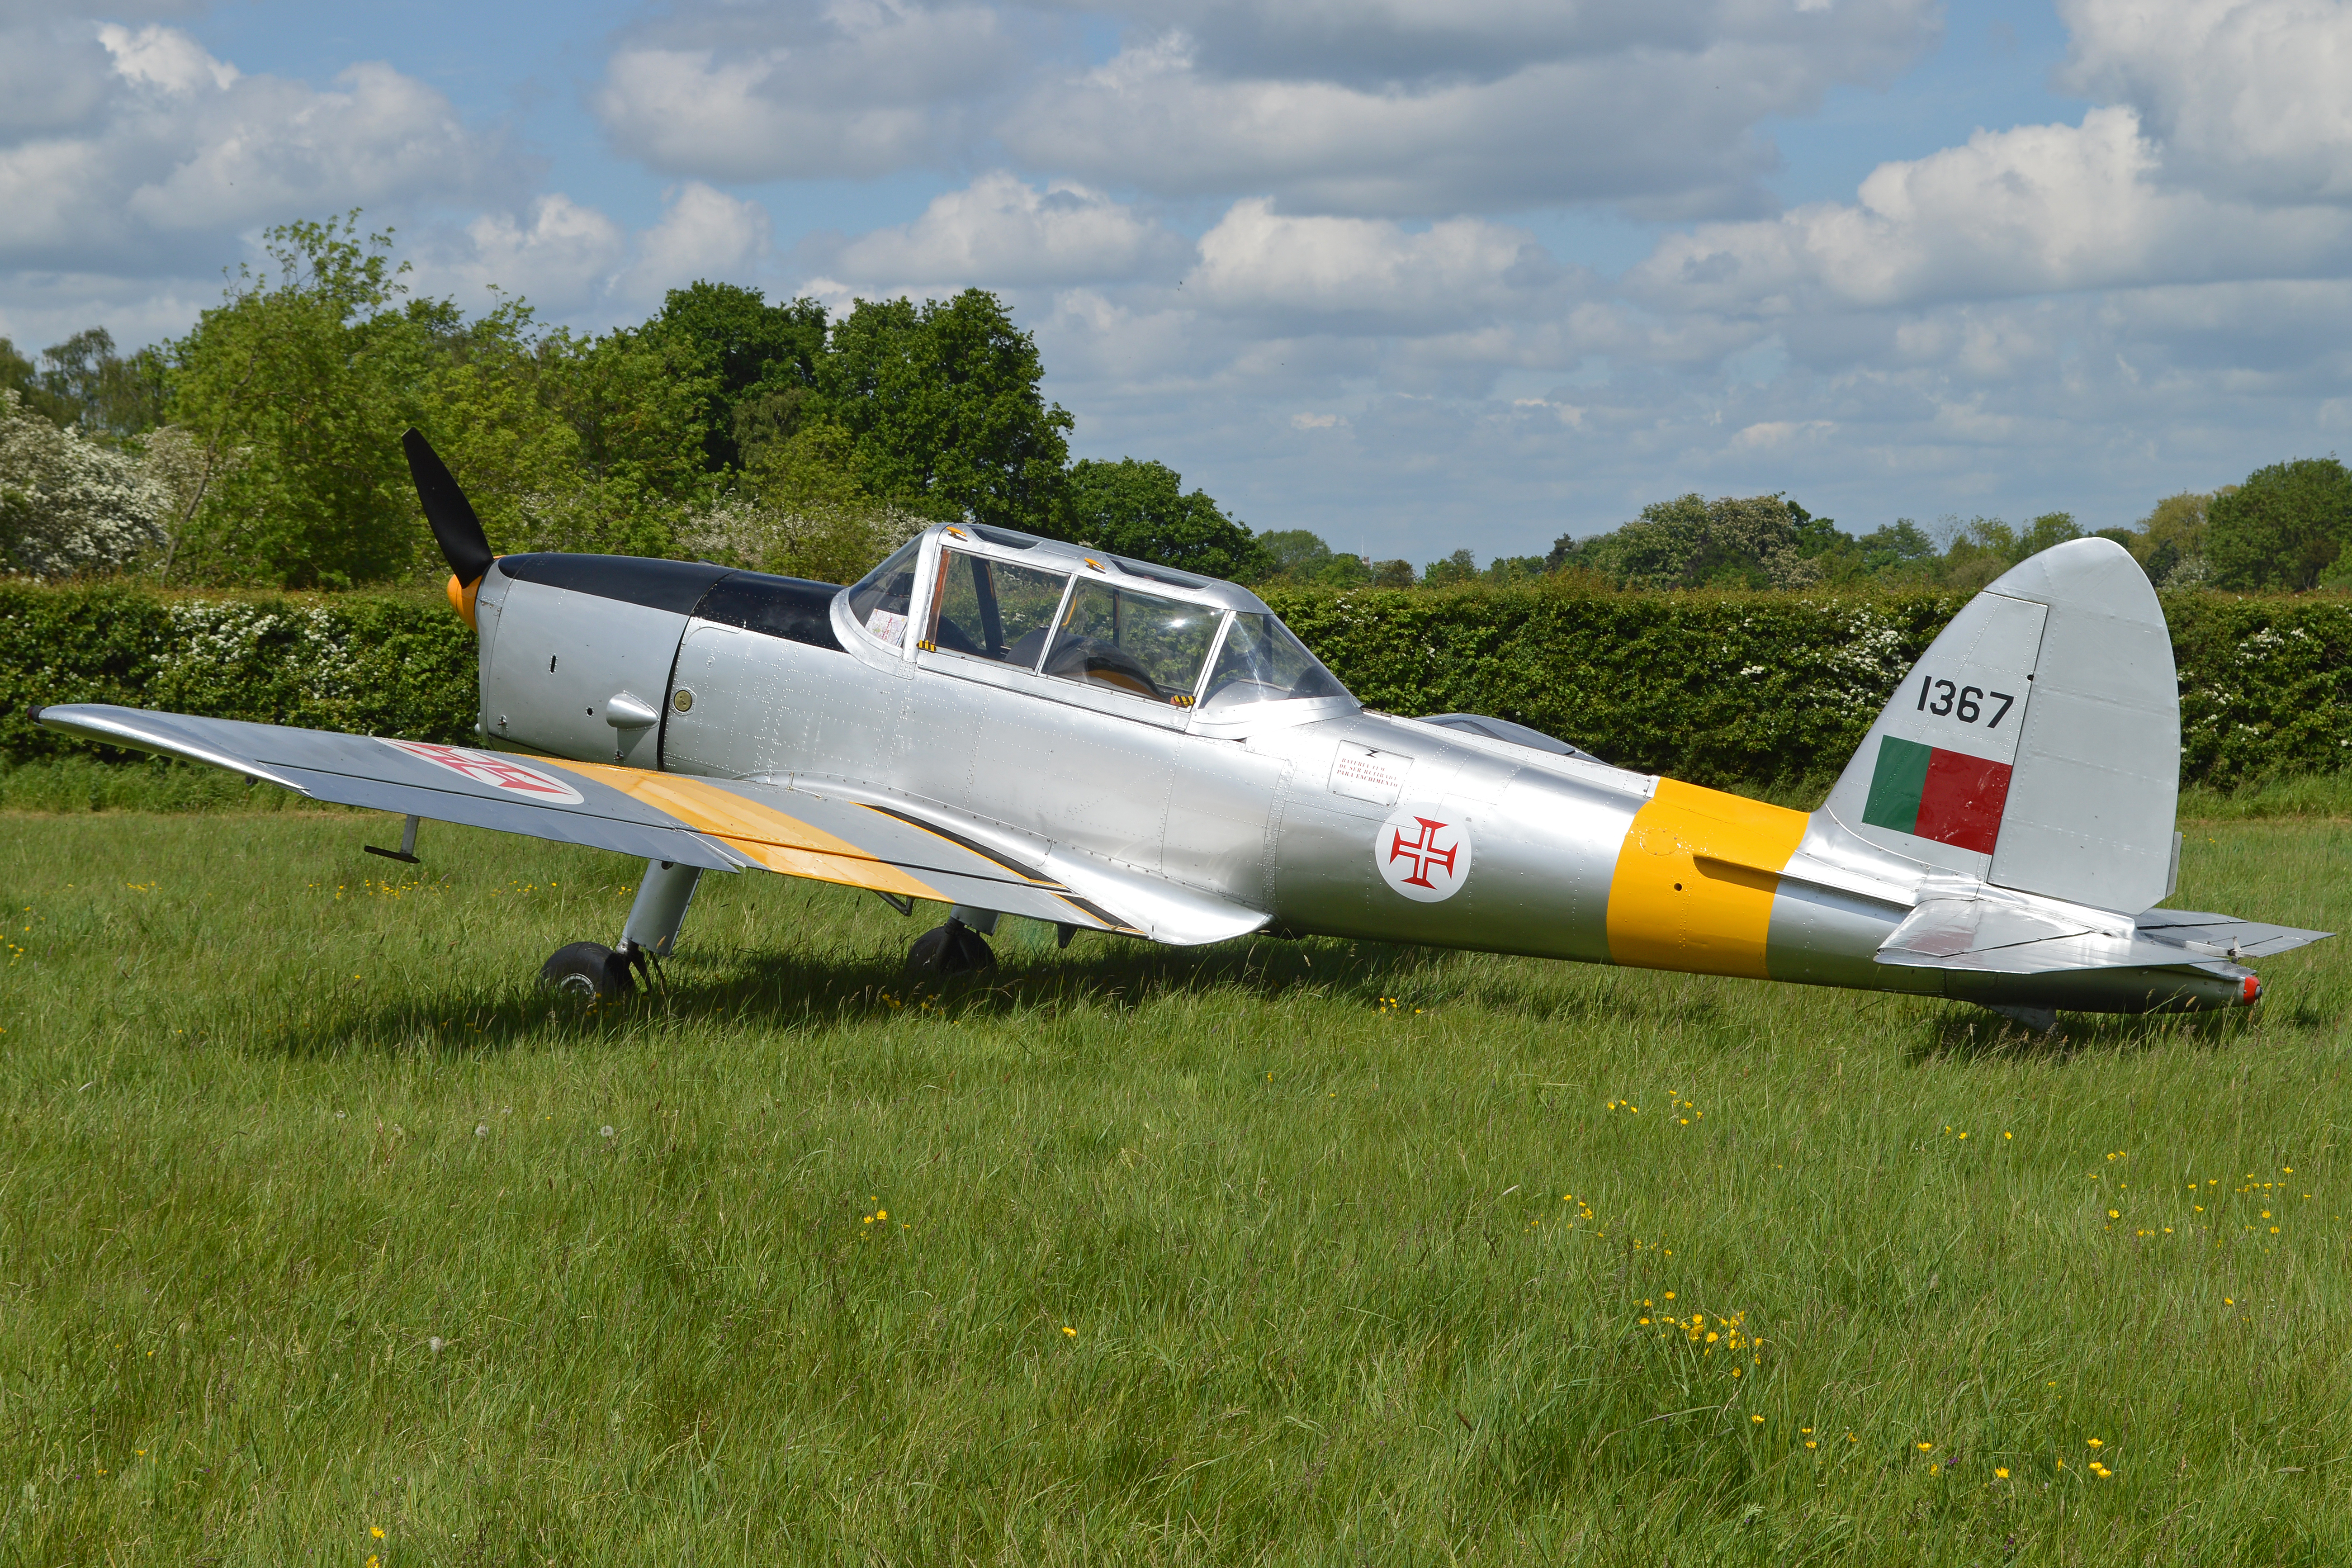 File:DHC-1 Chipmunk 22 '1367' (G-UANO) (